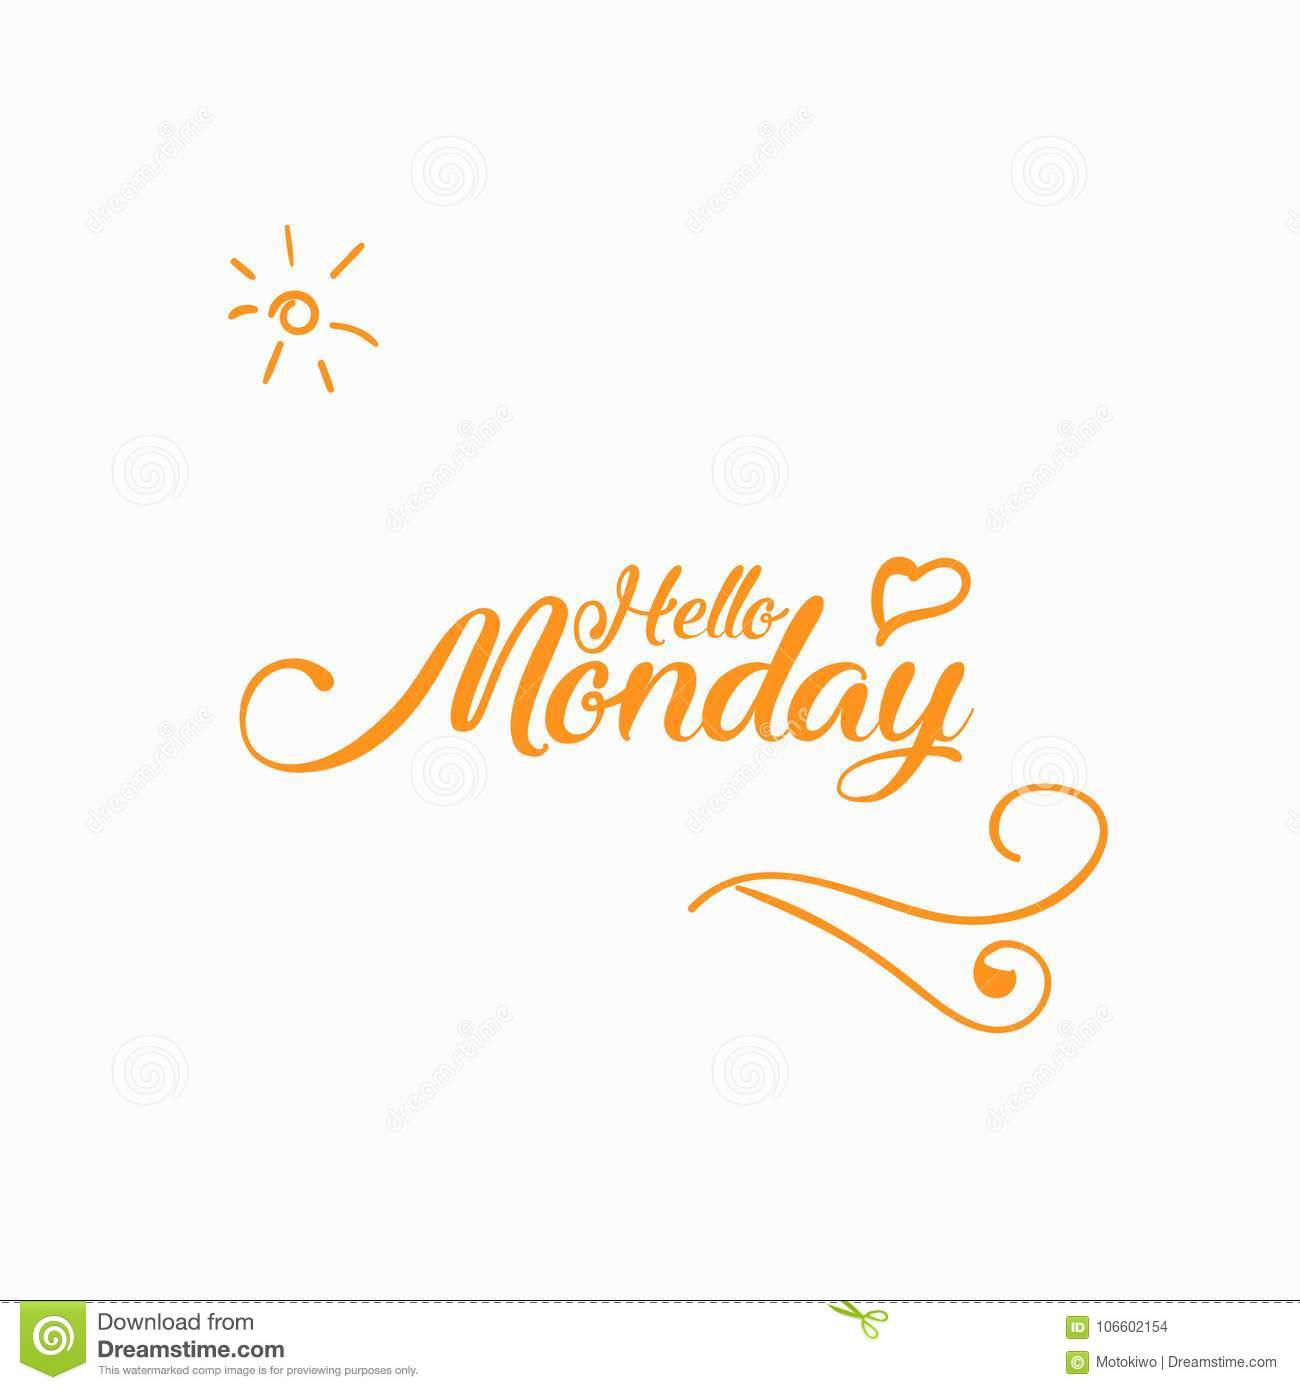 Happy monday greeting card design stock photo image of message happy monday greeting card design m4hsunfo